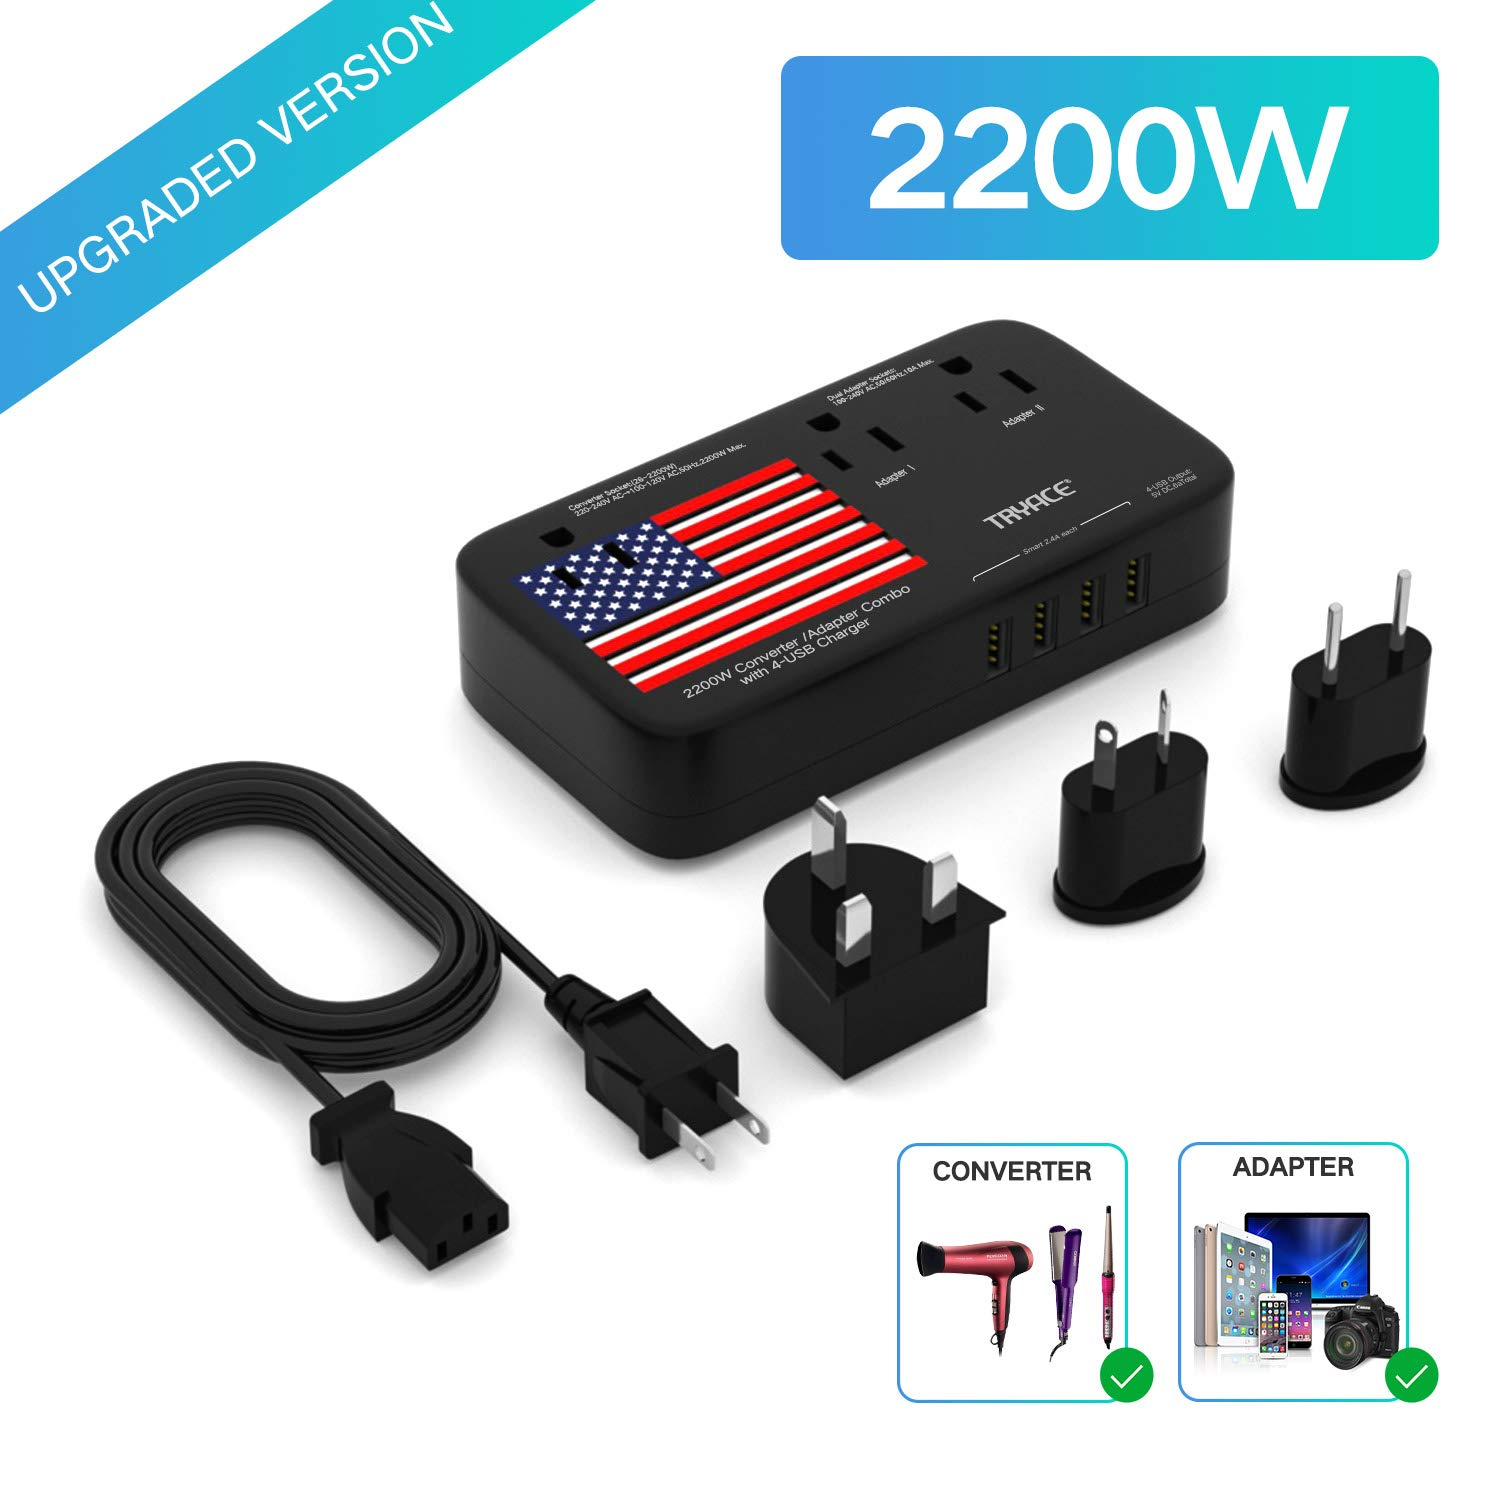 TryAce 2200W Exclusive Voltage Converter and 10A Travel Adapter with 4-Port USB,Power Converter Step Down 220V to 110V for Hair Dryer/Straightener/Curling Iron,US/UK/EU/AU Plug for 190+ Countries by TryAce